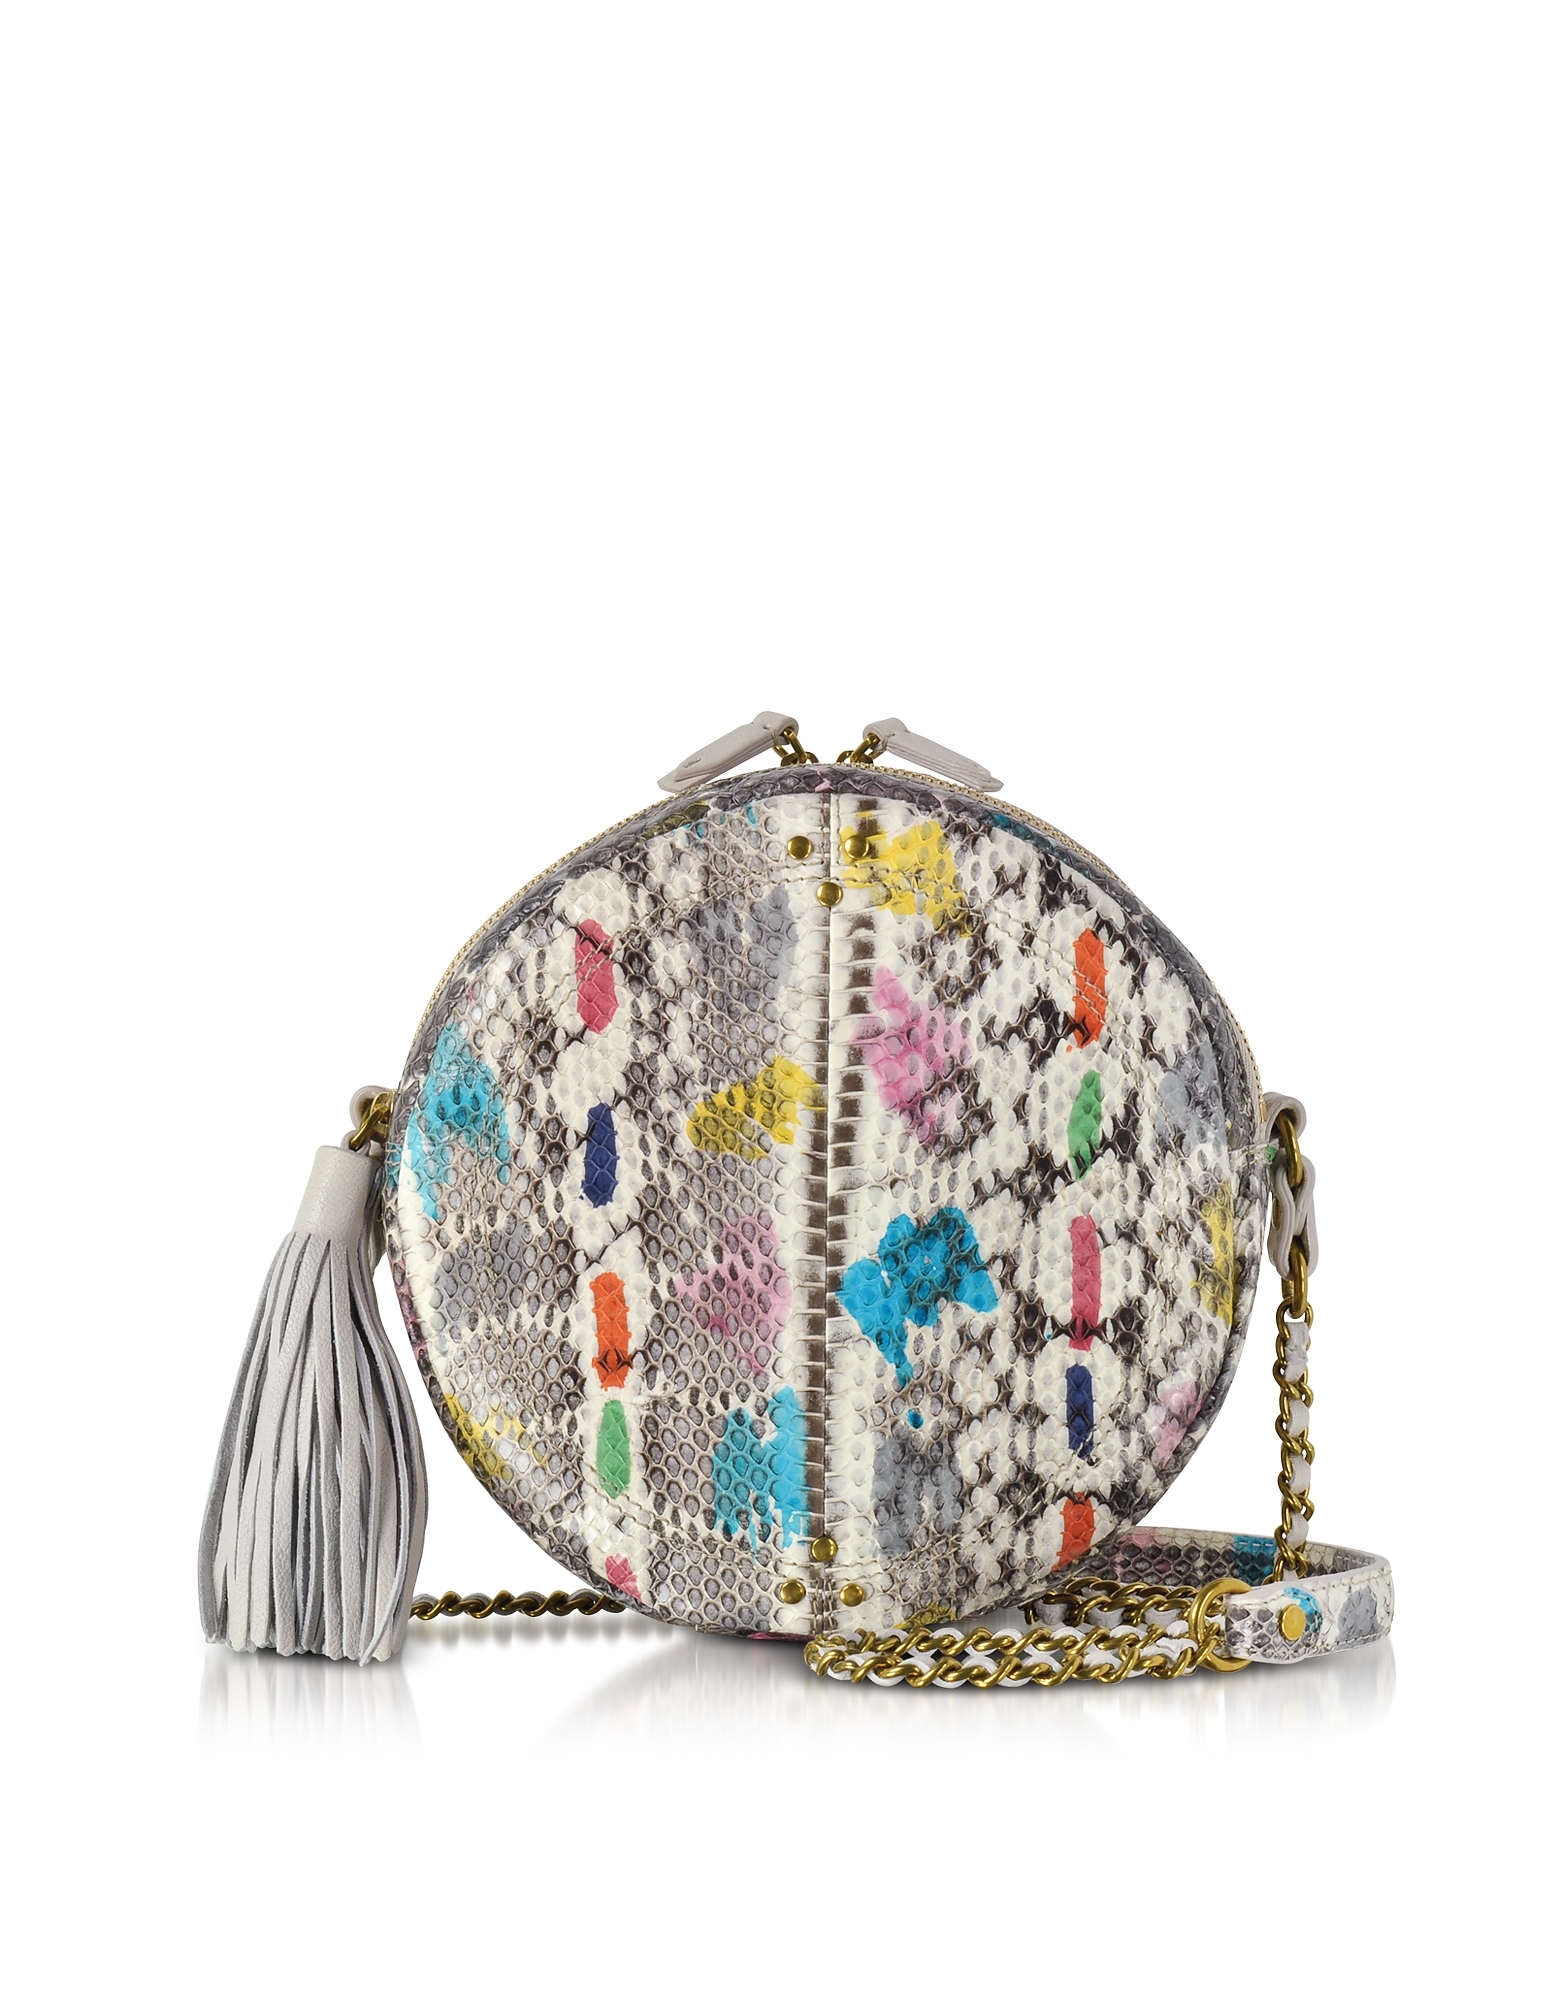 Jerome Dreyfuss Handbags, Remi Vassily Printed Snakeskin Round Crossbody Bag